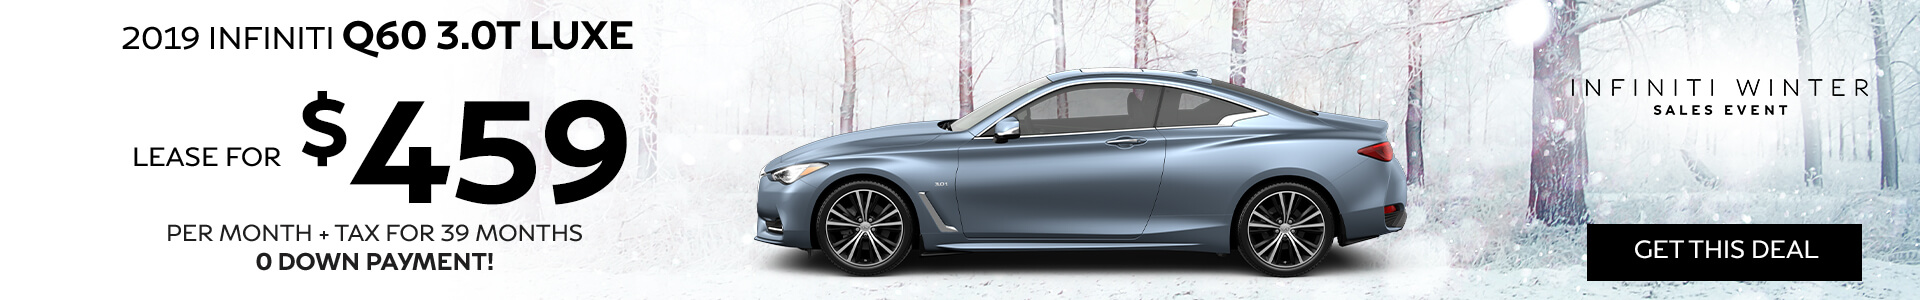 Q60 LUXE - Lease for $459